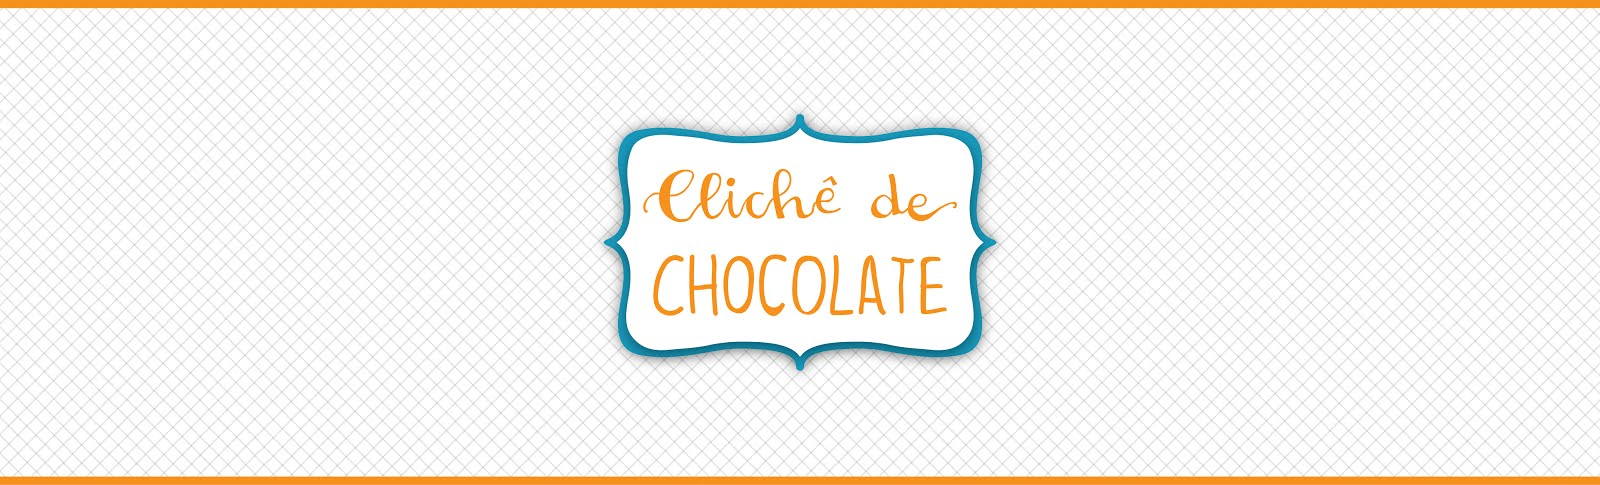 Clichê de Chocolate